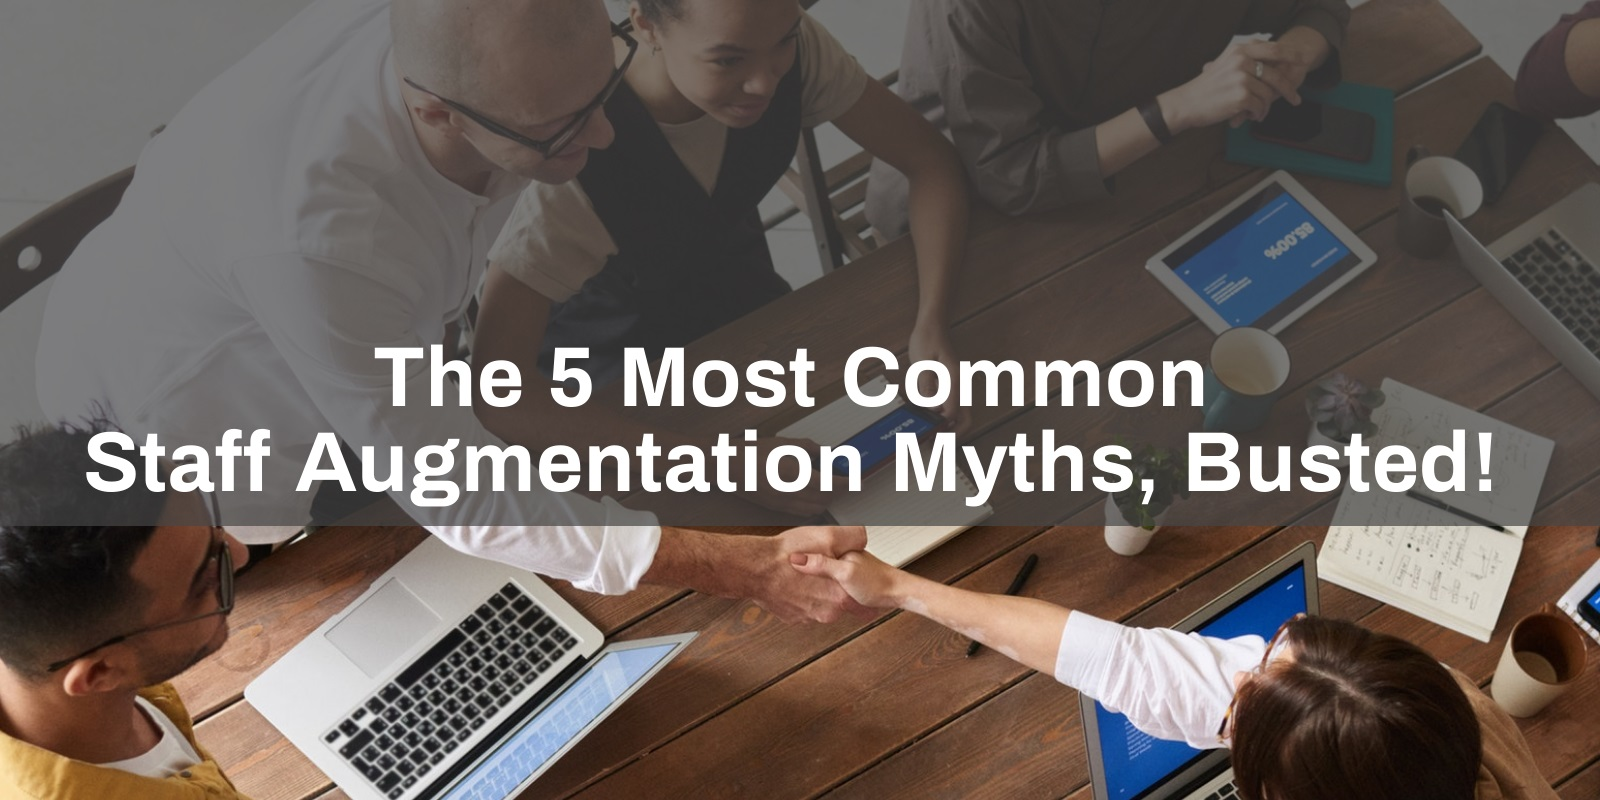 The 5 Most Common Staff Augmentation Myths, Busted!